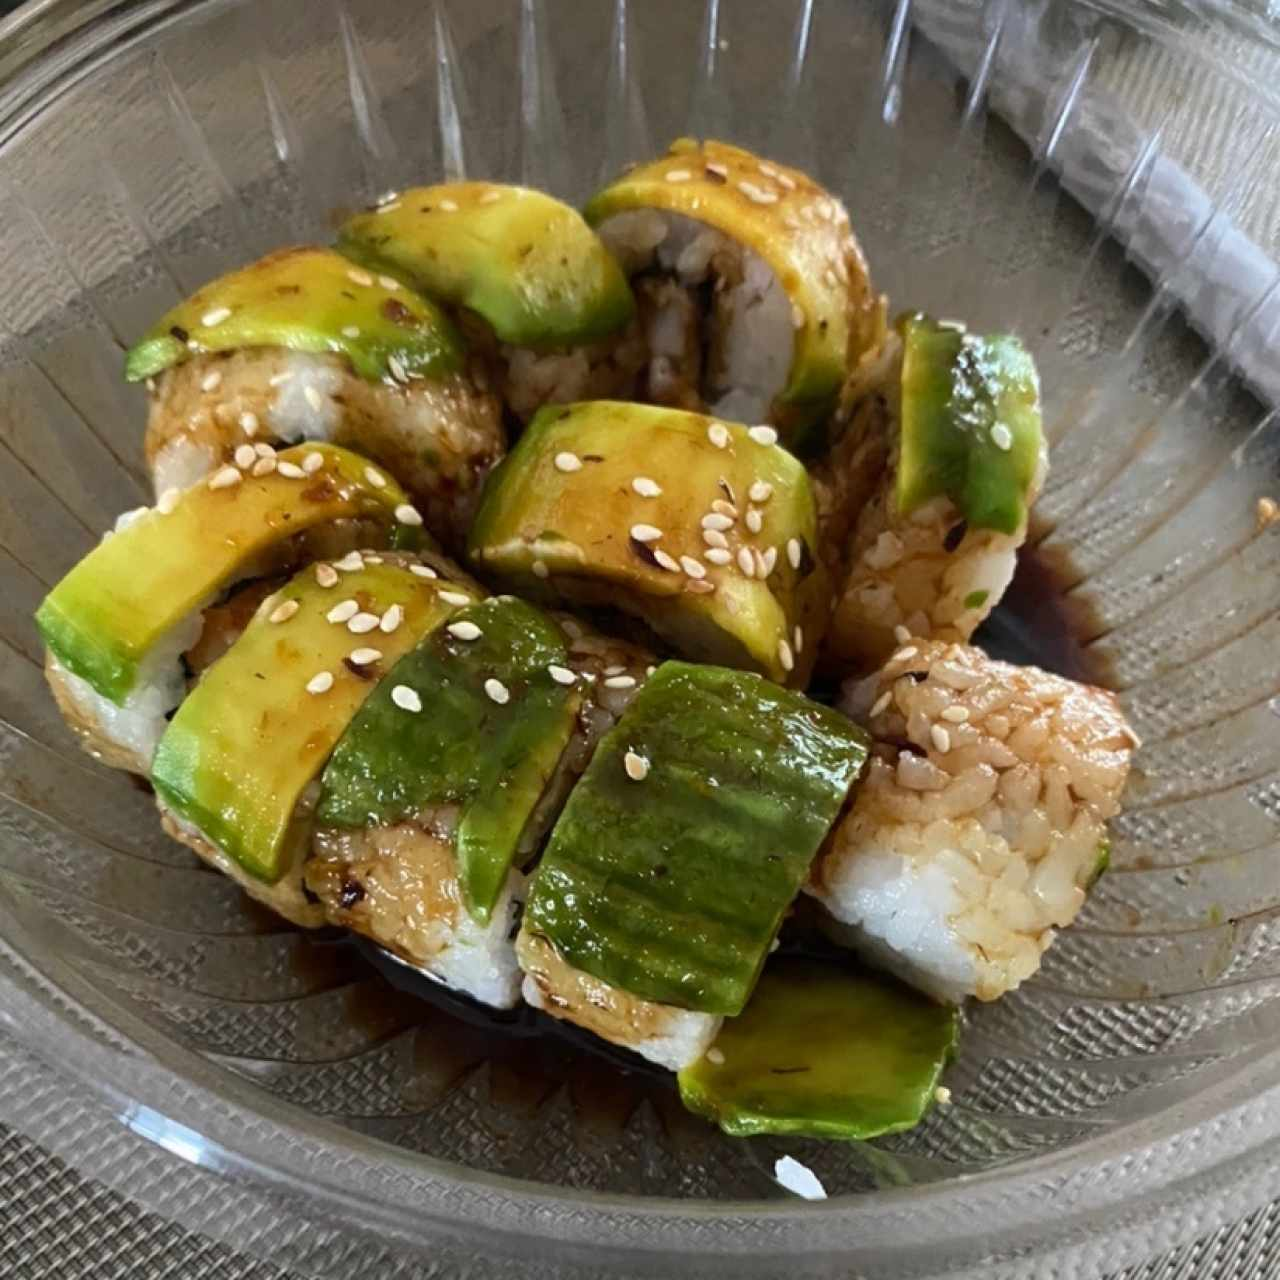 Makis Roll - Avocado Maki